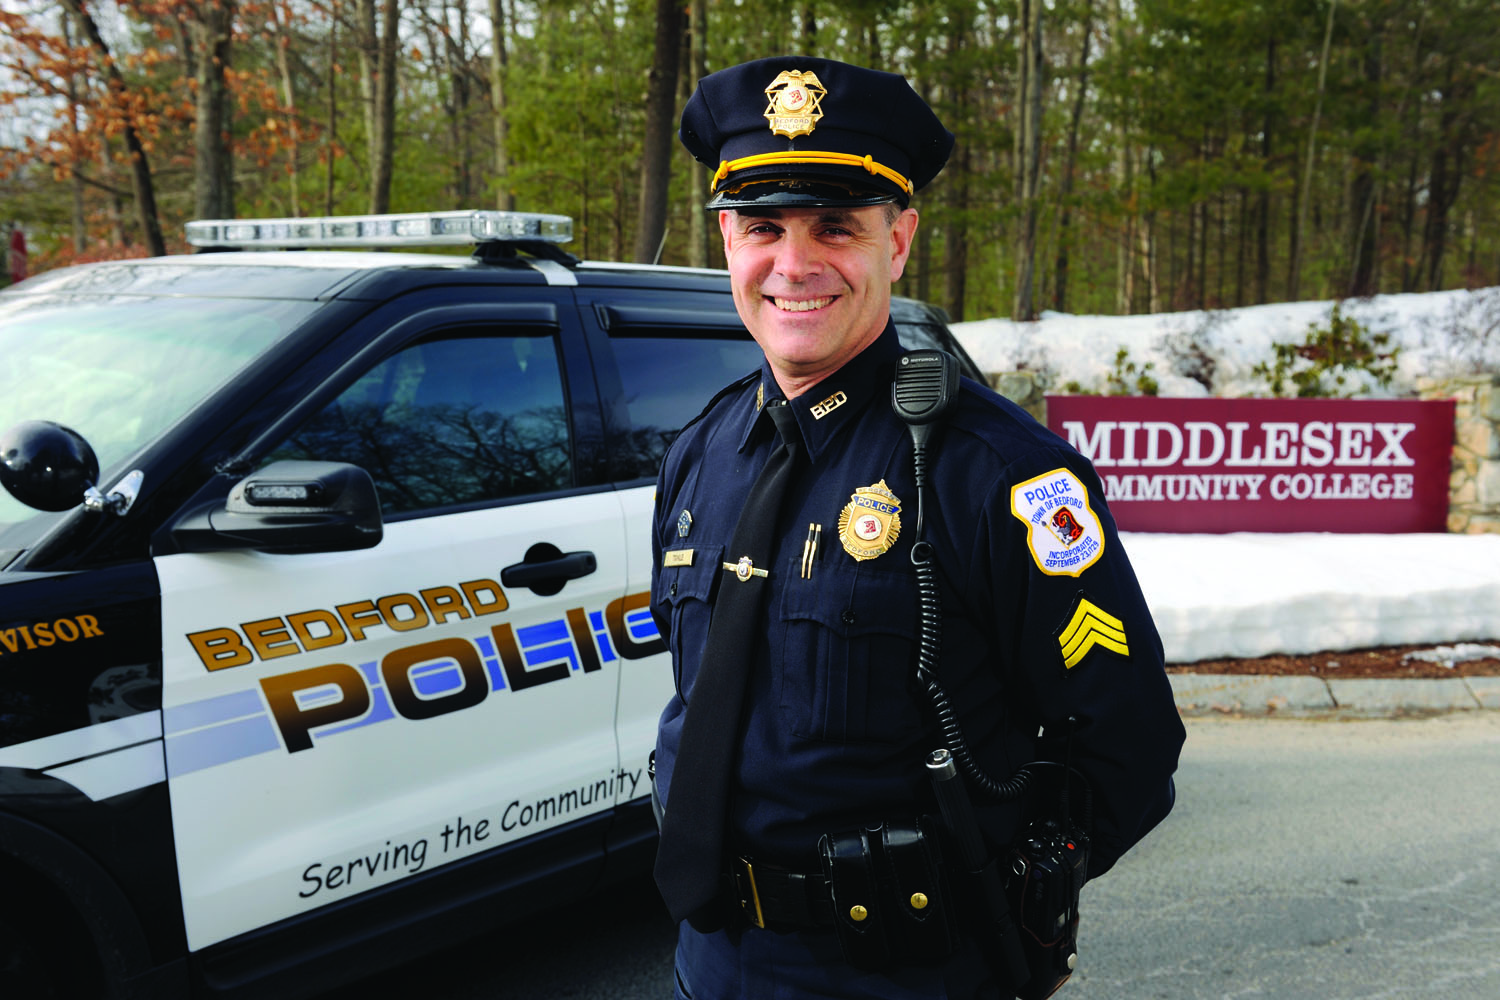 Sgt. Patrick Towle of the Bedford Police Department will recieve MCC's 2014 Distinguished Alumni Award.